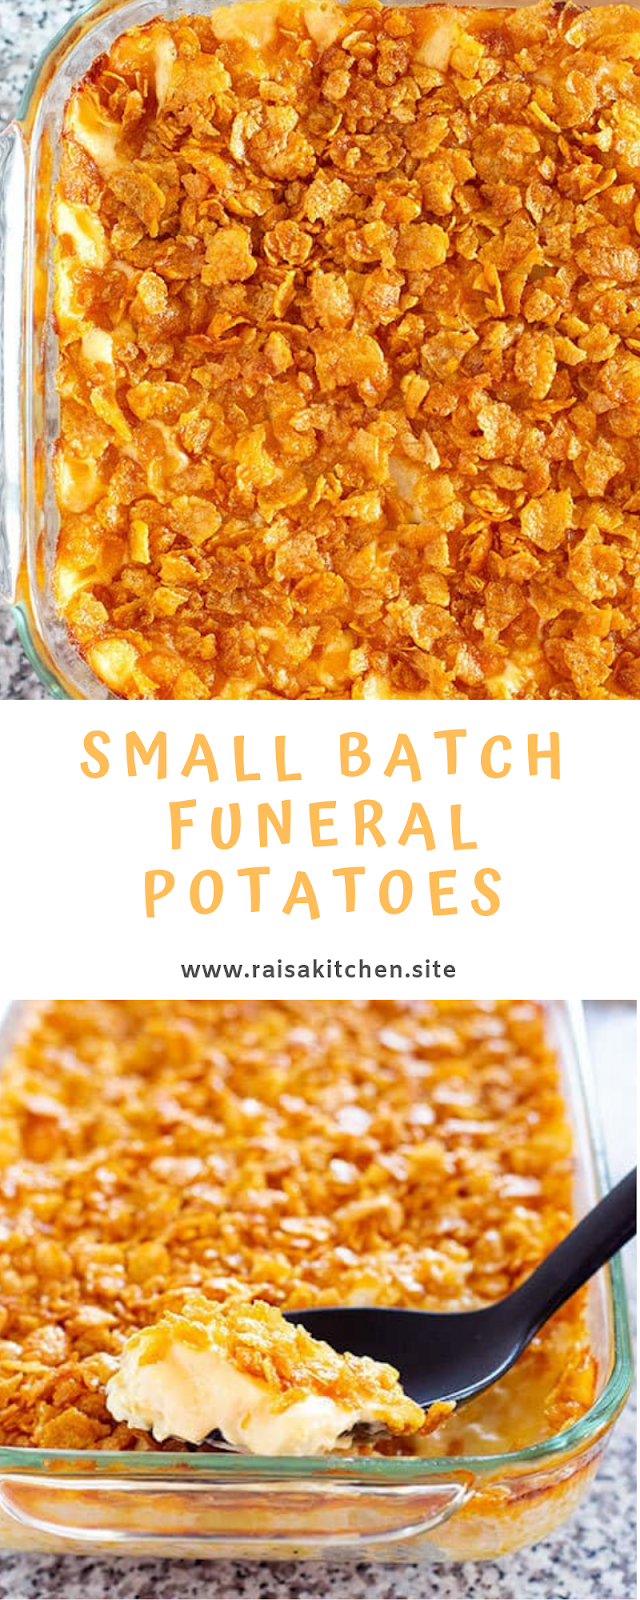 Small Batch Funeral Potatoes